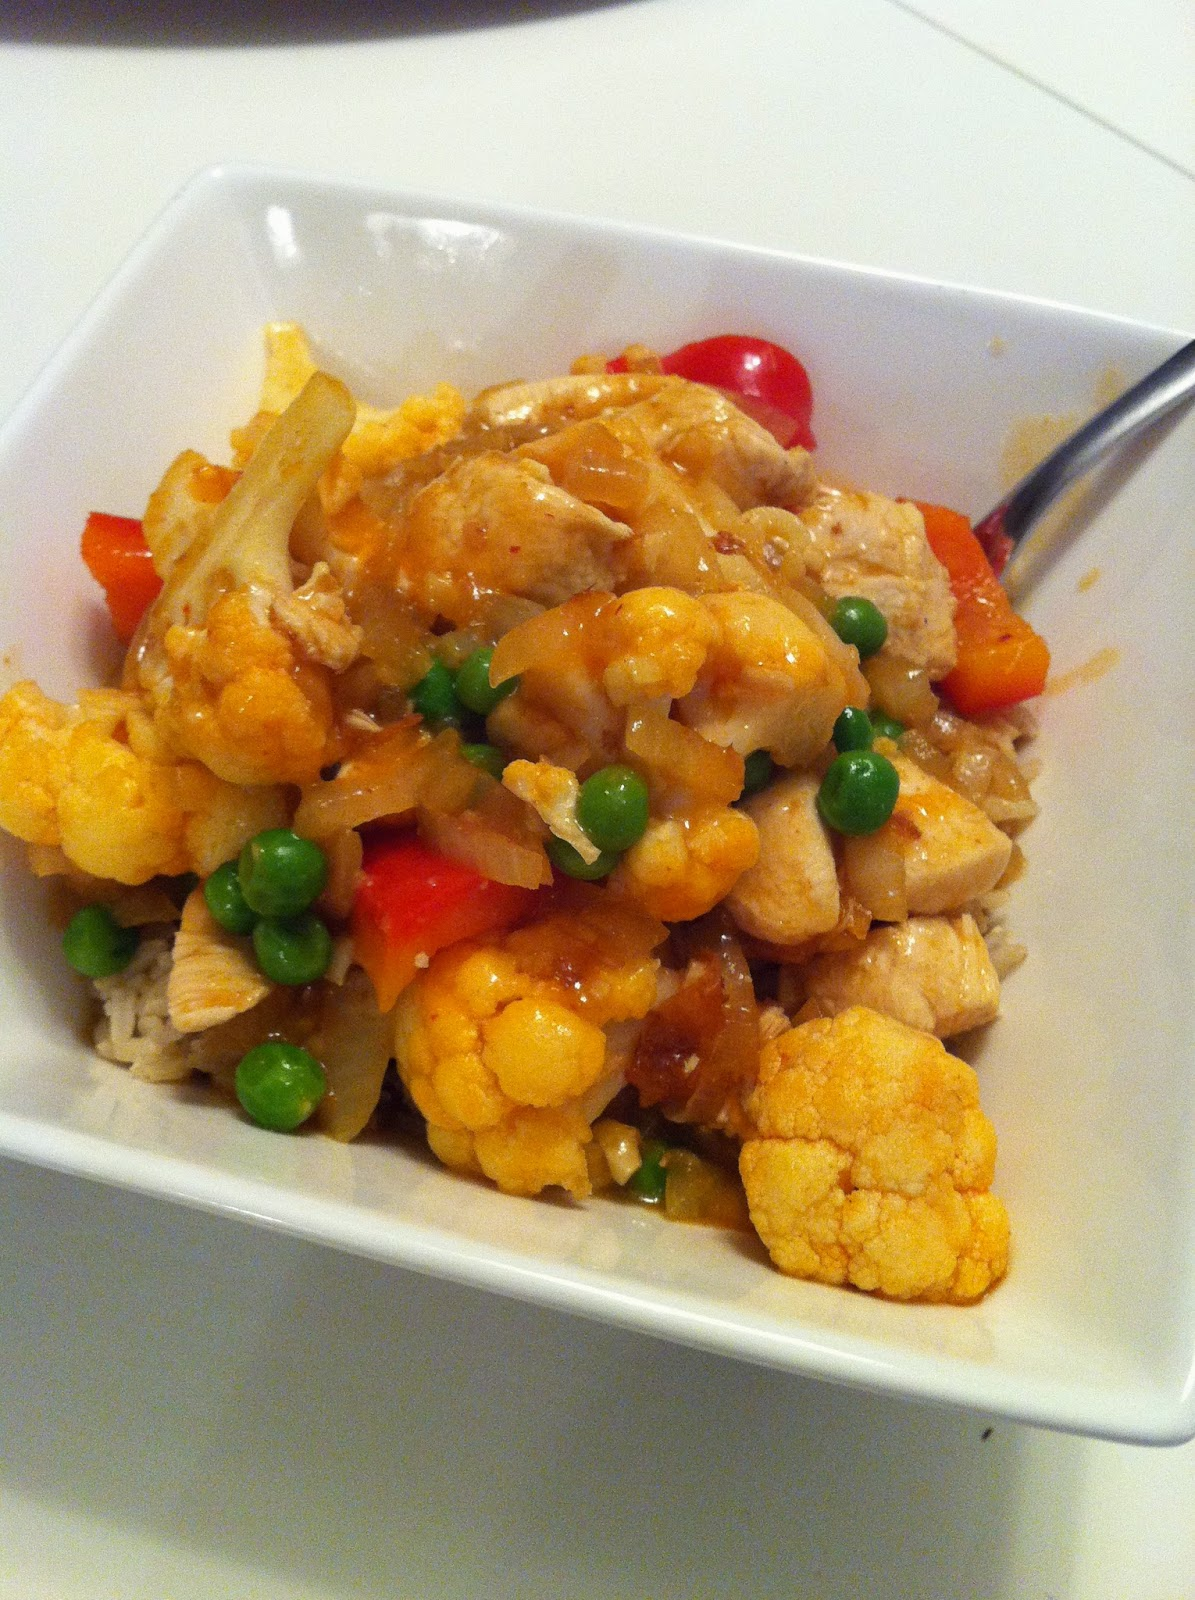 ... Kitchen with Reebs: Easy Weeknight Dinners - Chicken Curry in a Hurry